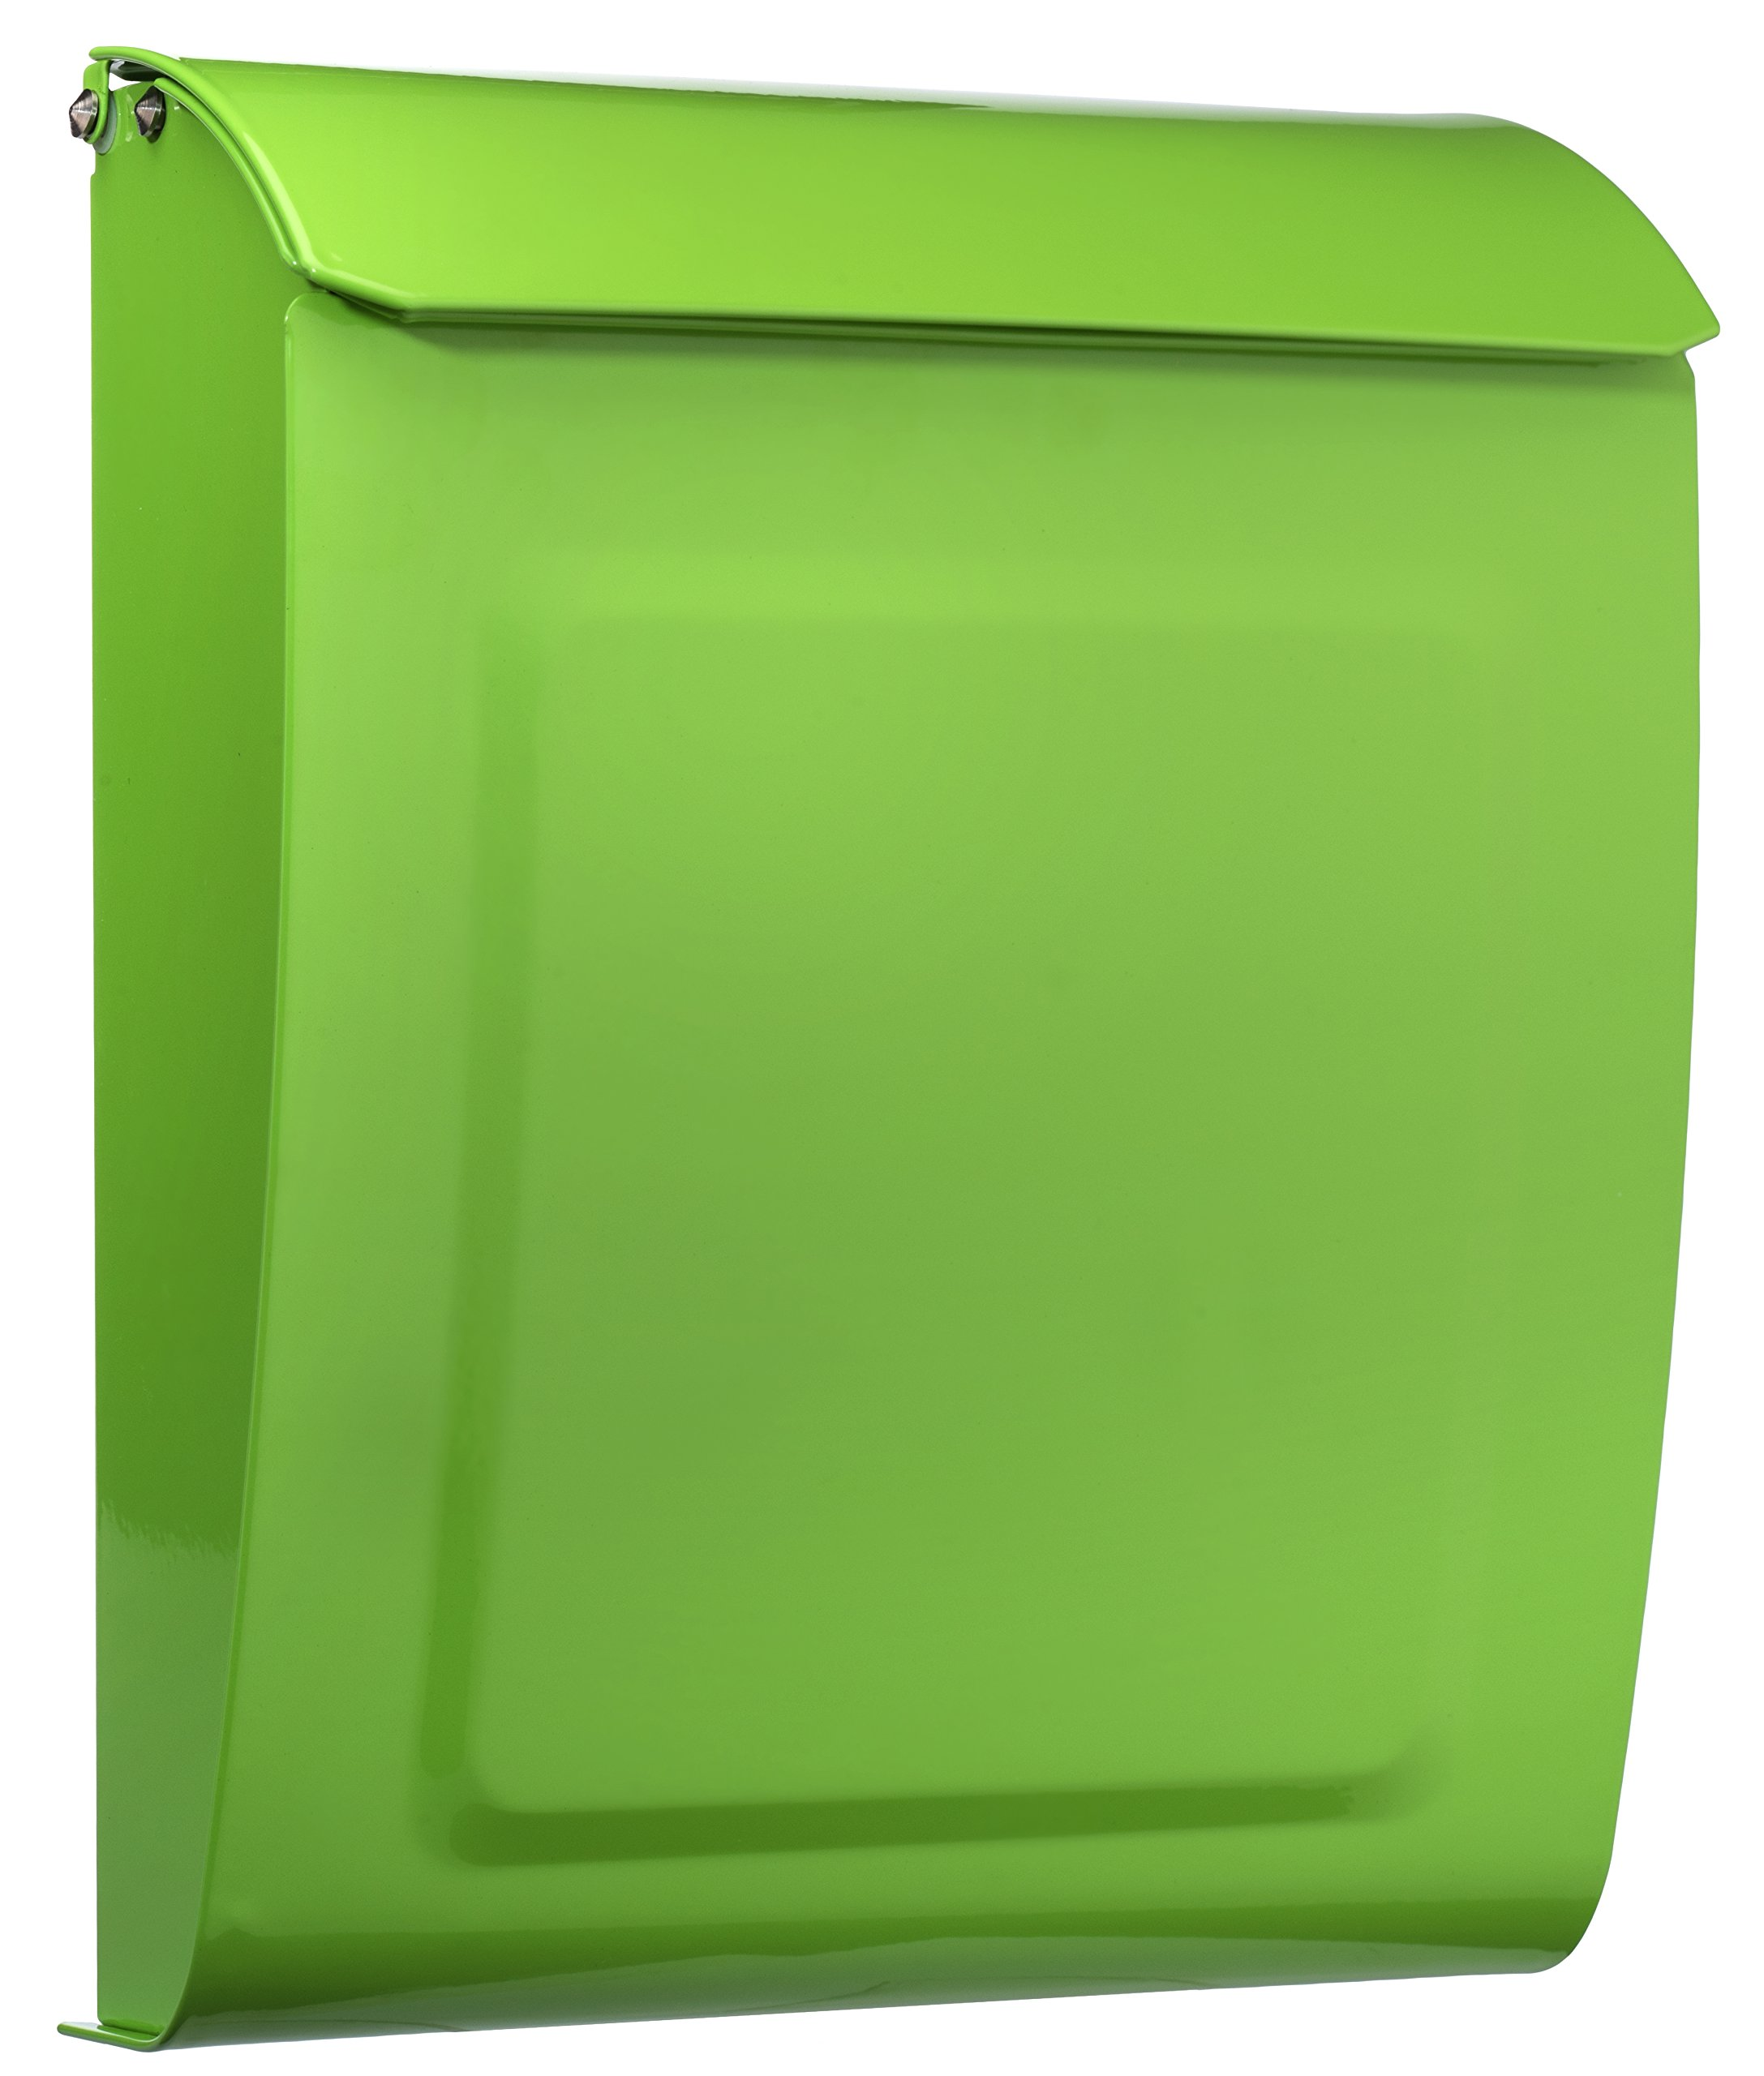 ARCHITECTURAL MAILBOXES 2594LG Architectural Mailboxes Aspen Locking Wall Mount Mailbox Lime Green Aspen Locking Wall Mount Mailbox, Small, Lime Green